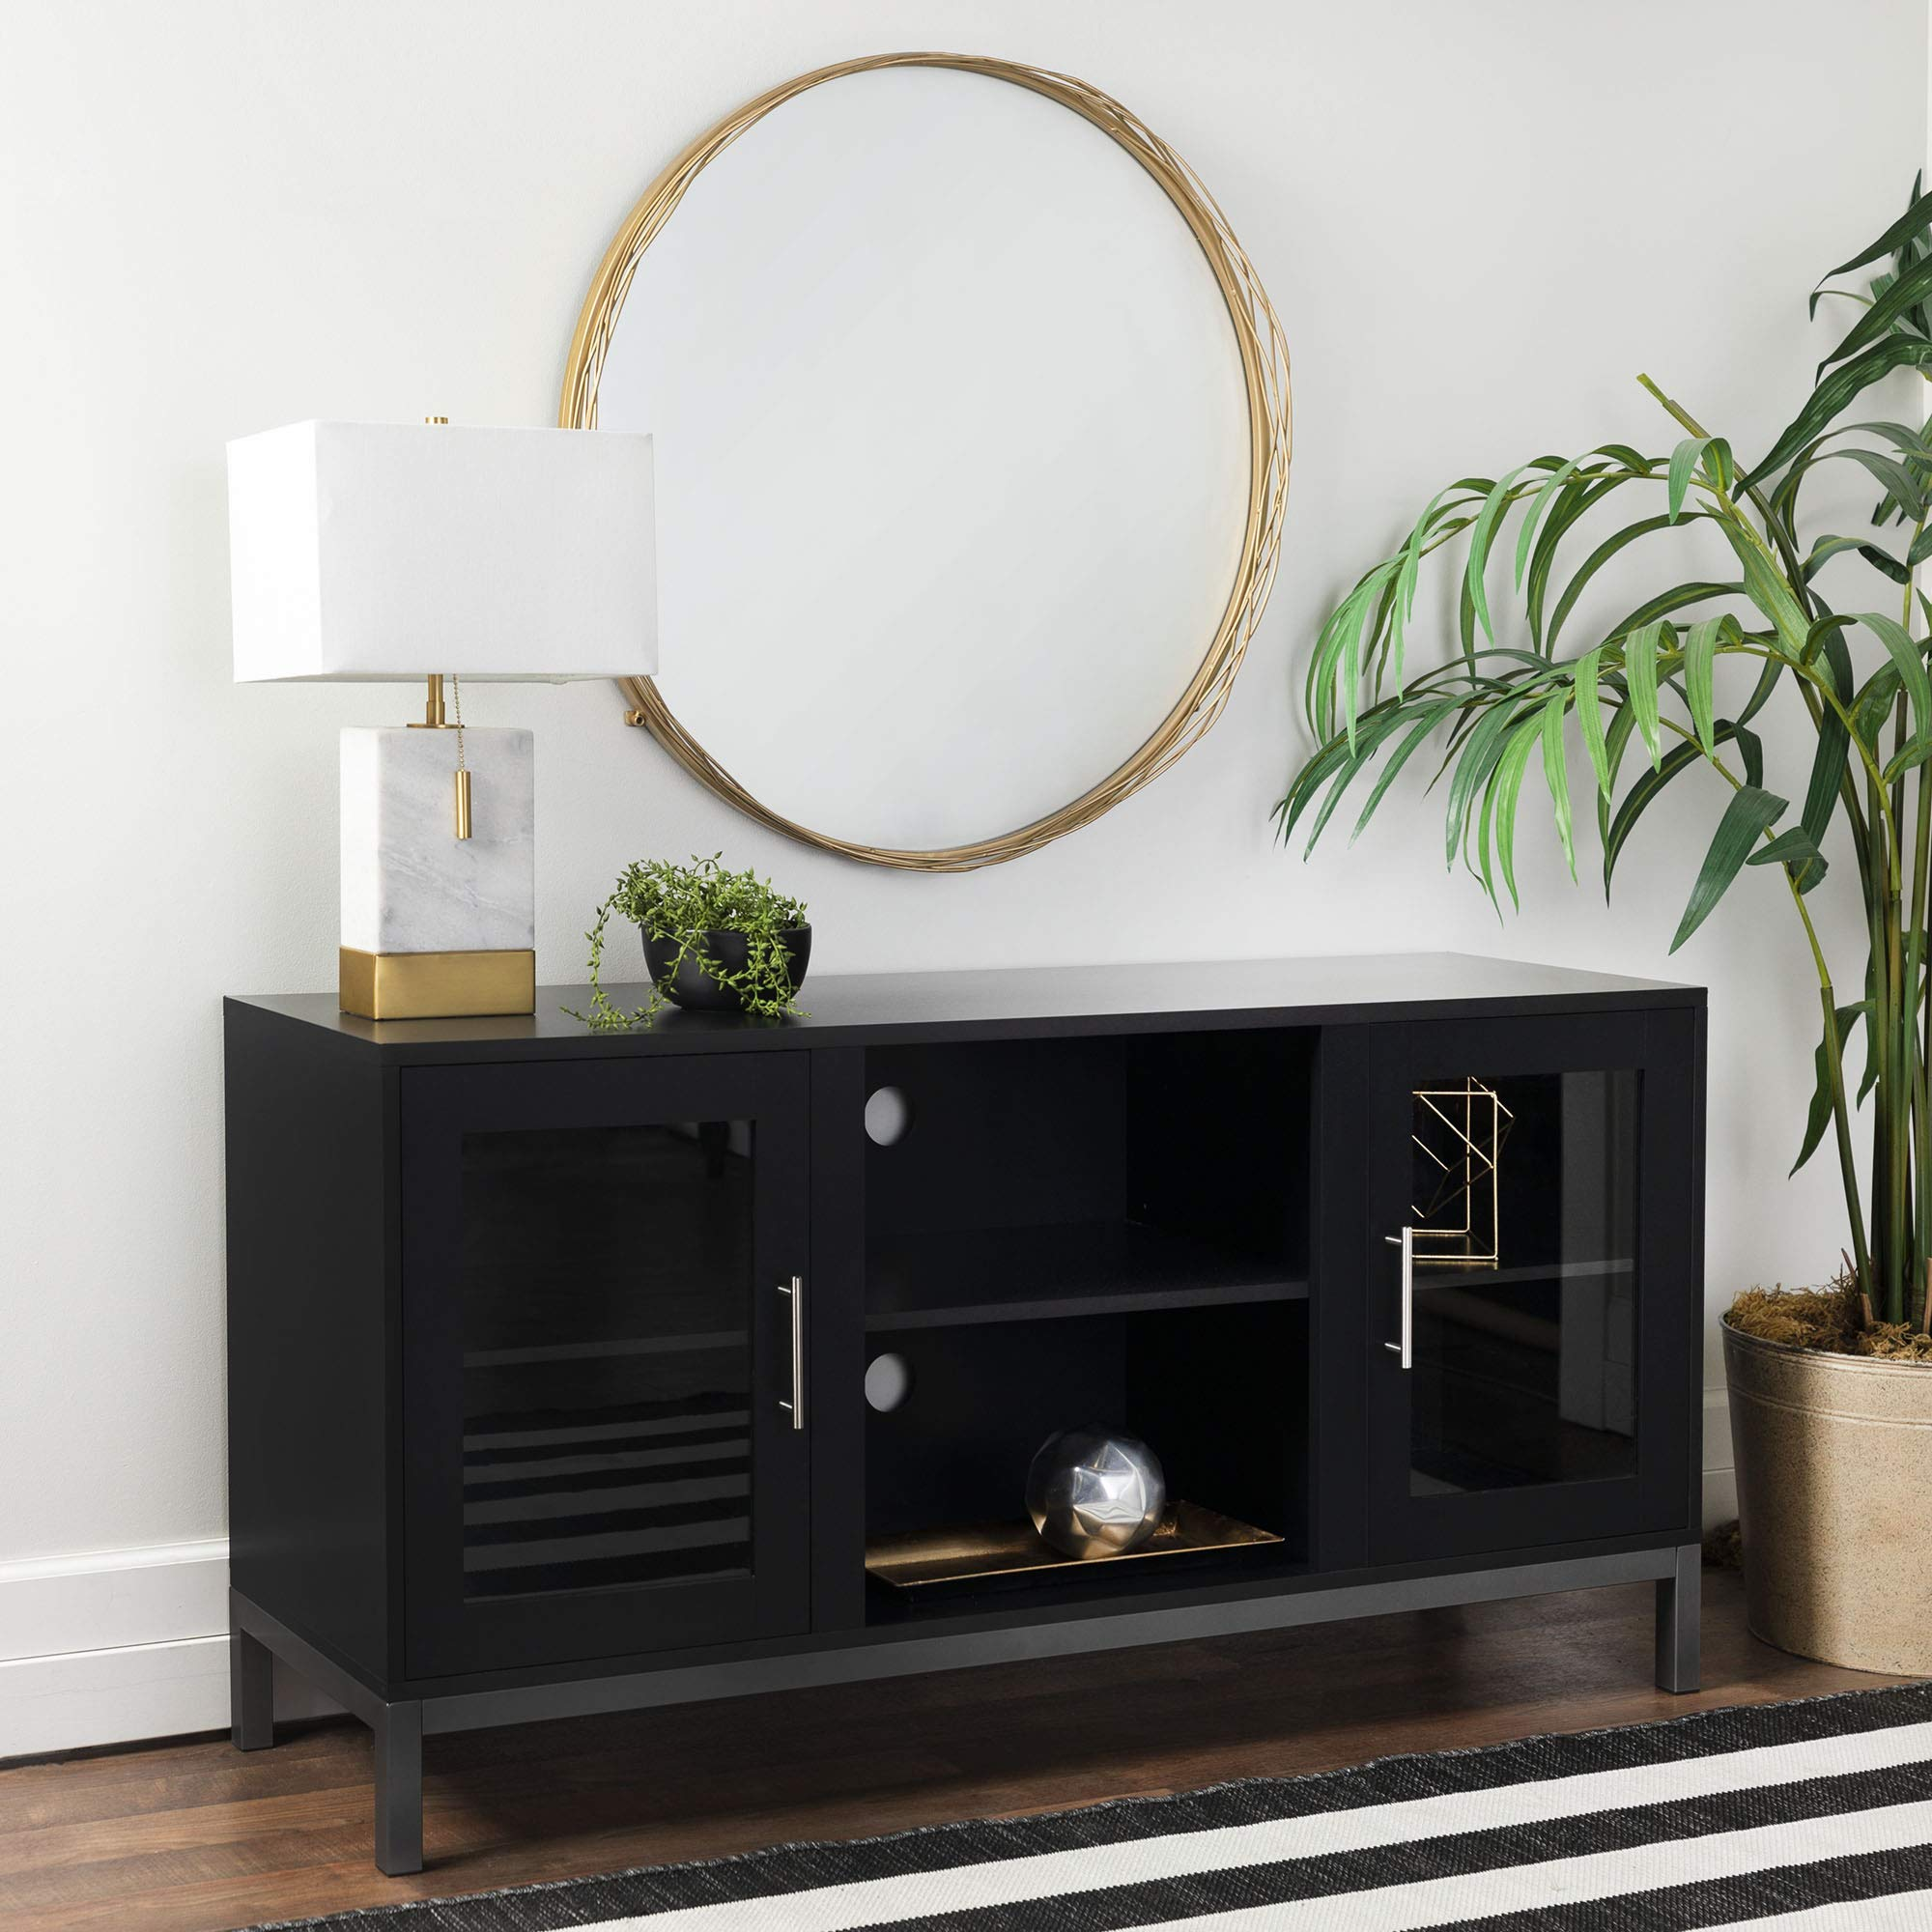 WE Furniture Modern Stand TV's up to 56'' Living Room Storage, Black by WE Furniture